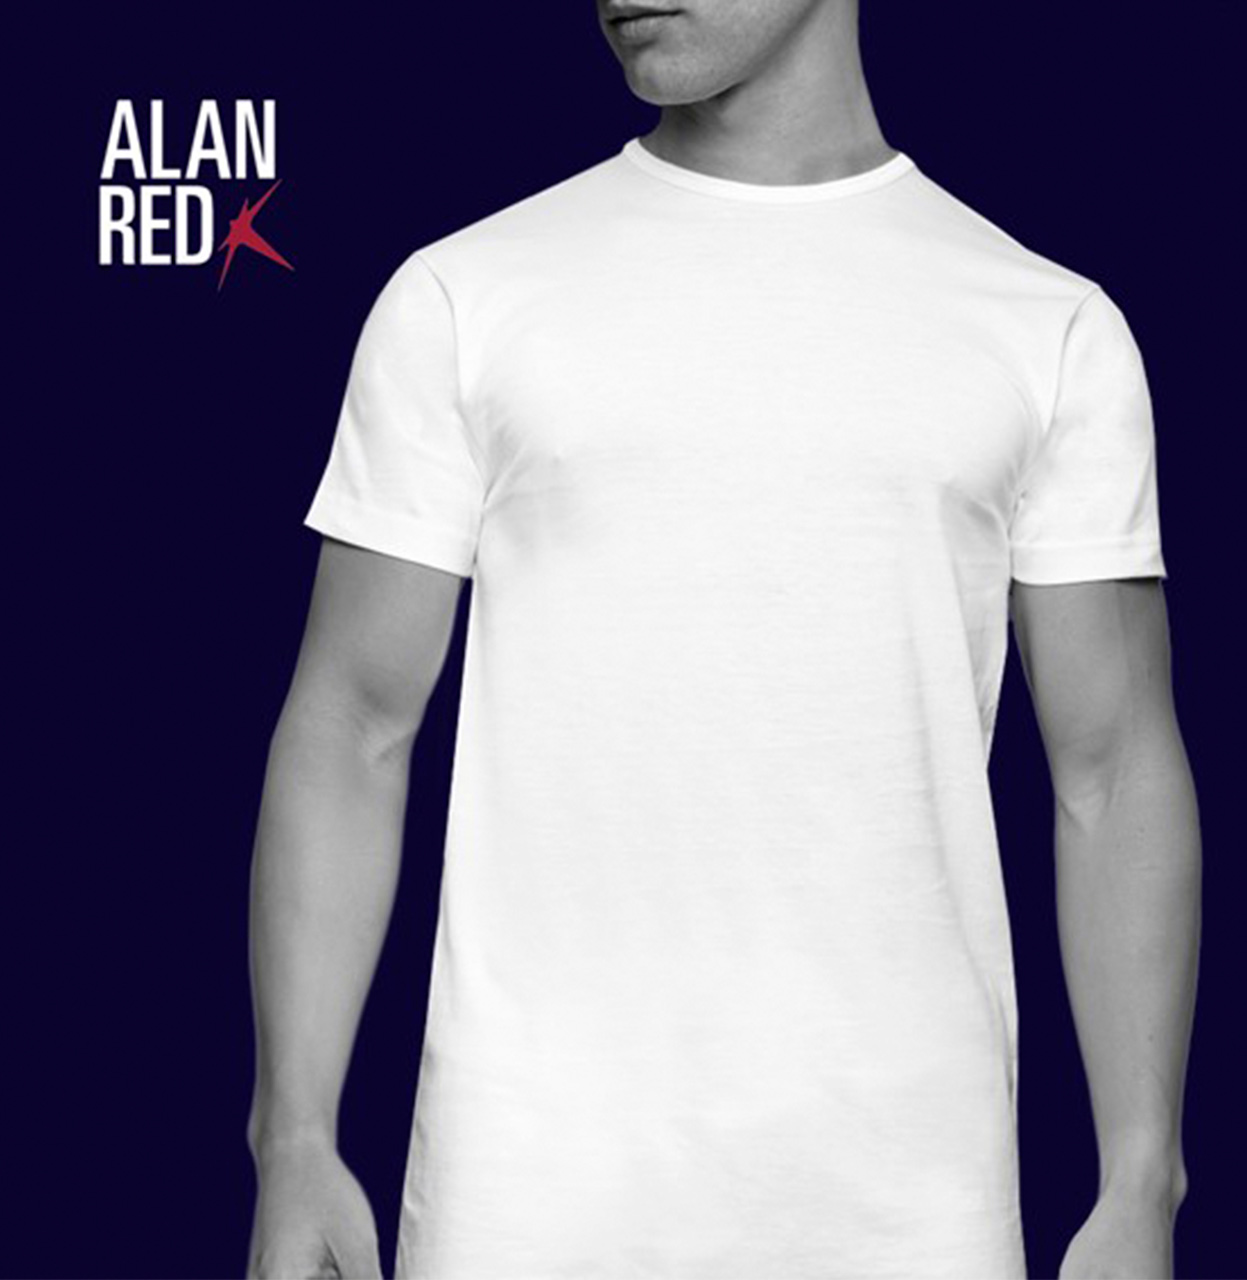 Alan Red T-shirt DERBY 2-PACK DERBY 2-PACK wit Maat XL